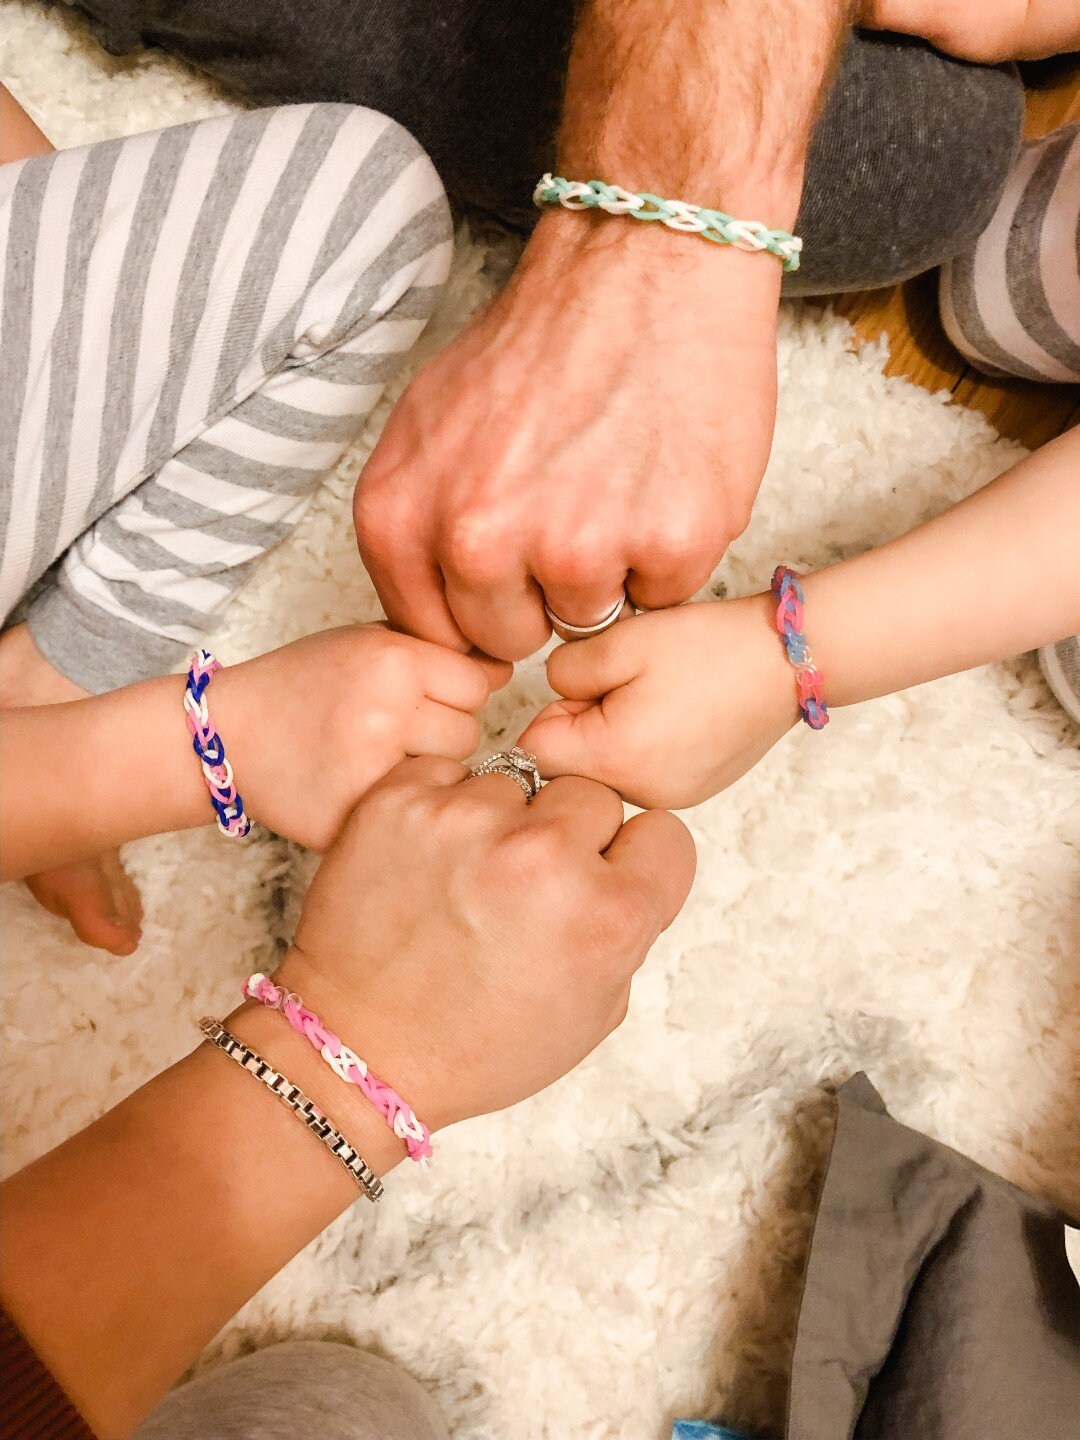 Friendship bracelets:  a sign of hope for the future